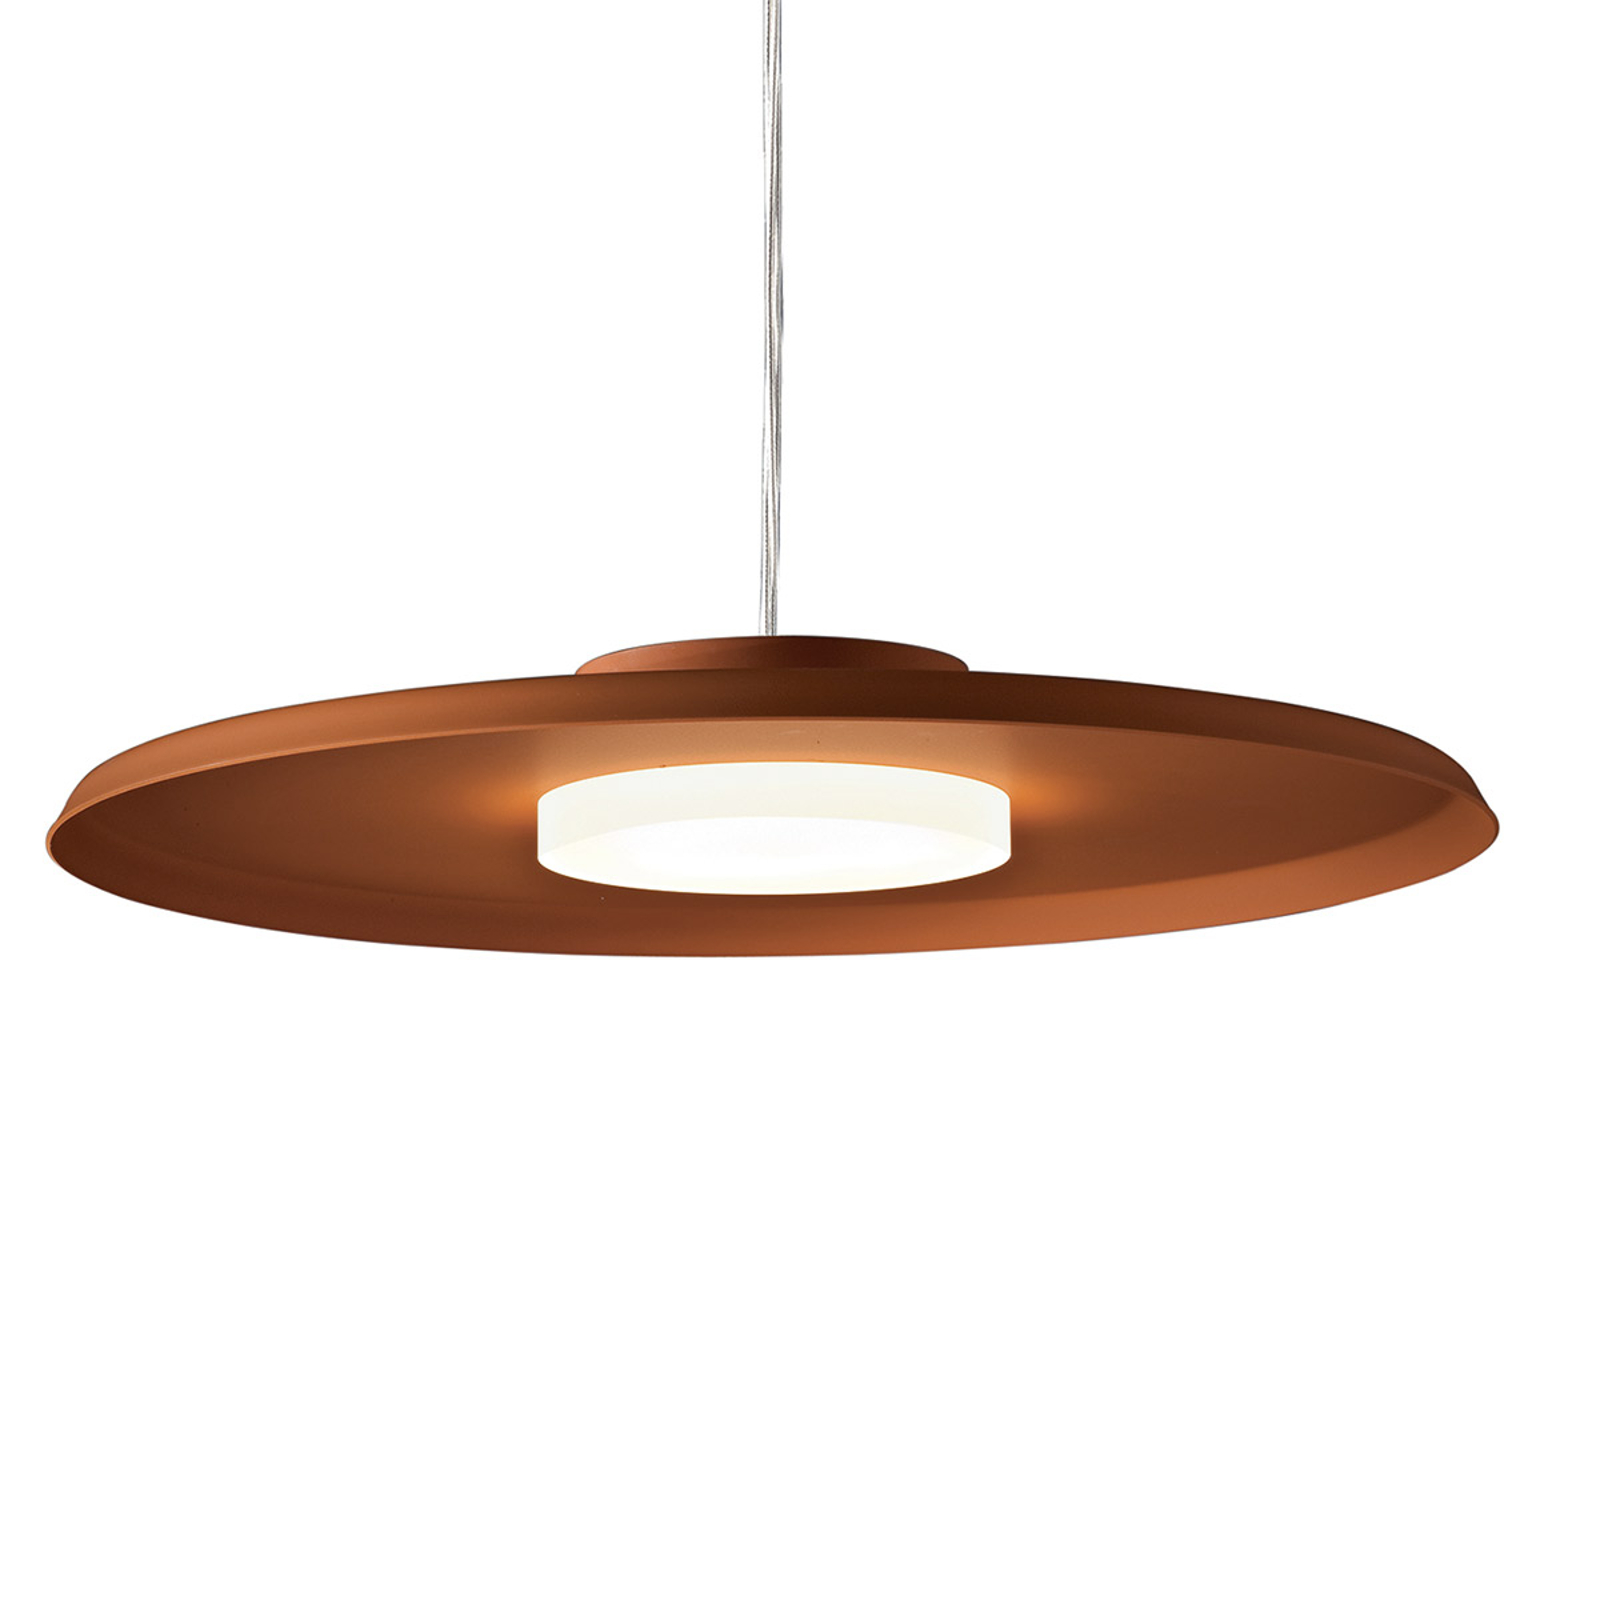 LED hanglamp 360, baksteenrood